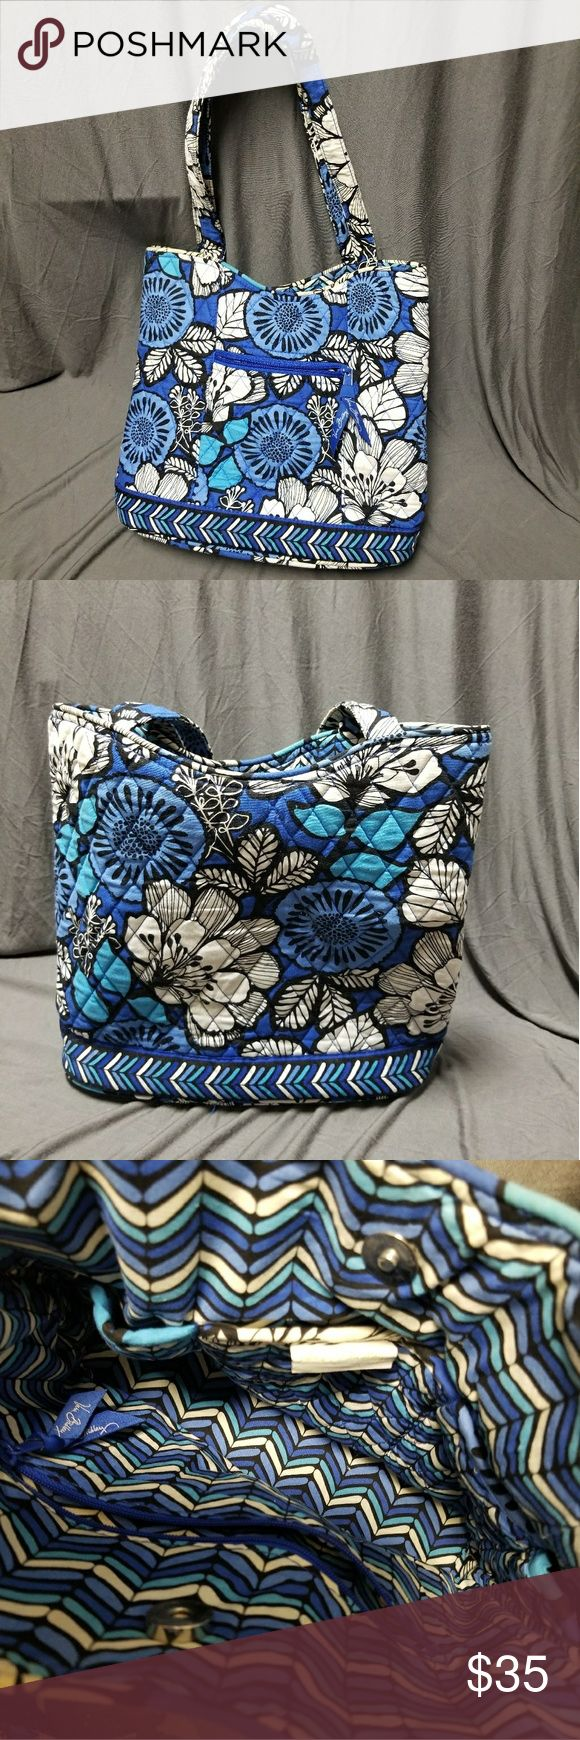 Very Bradley Tote GUC VERA BRADLEY tote bag. Good Used Condition. Rarely used. Minor staining and discoloration on the handles. Vera Bradley Bags Totes